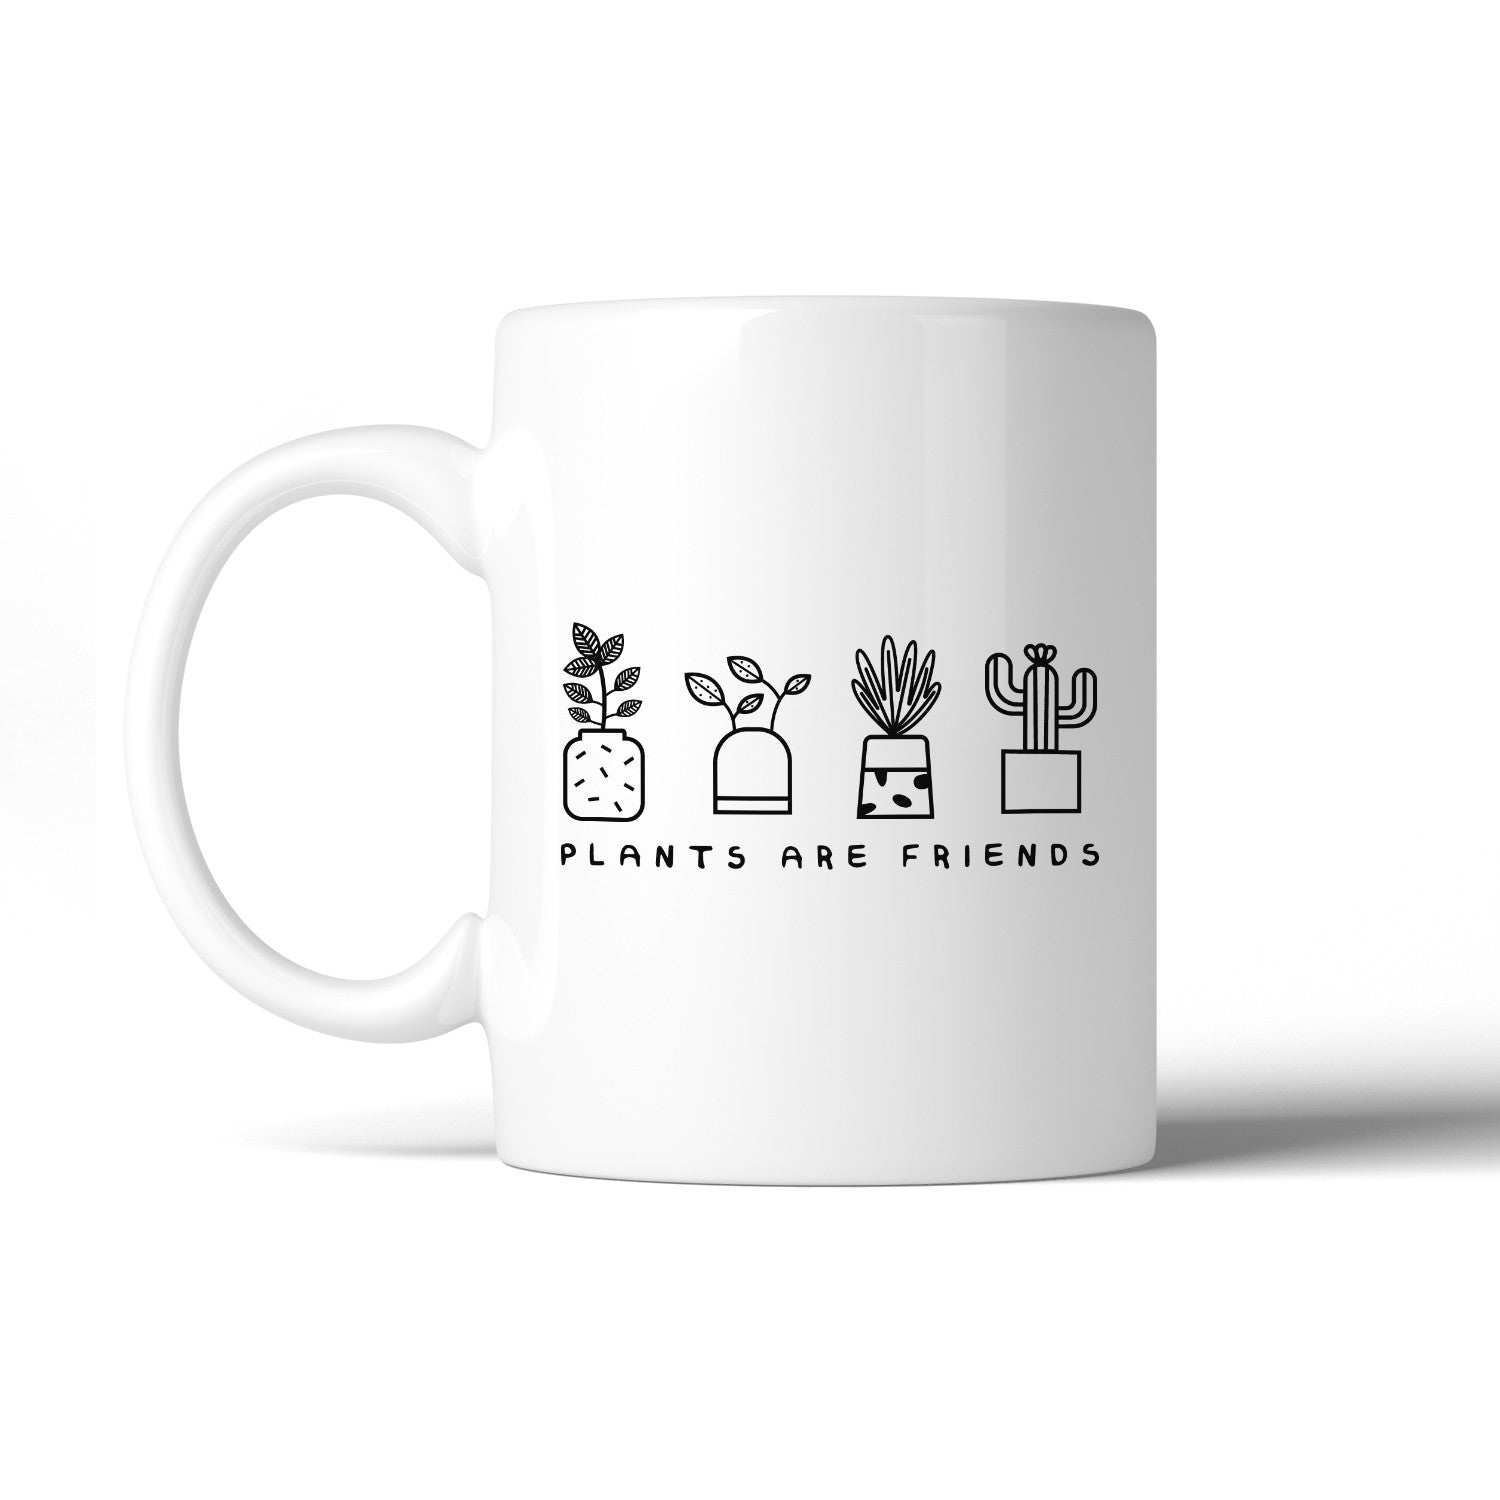 Mug Design Ideas Cheaper Than Retail Price Buy Clothing Accessories And Lifestyle Products For Women Men